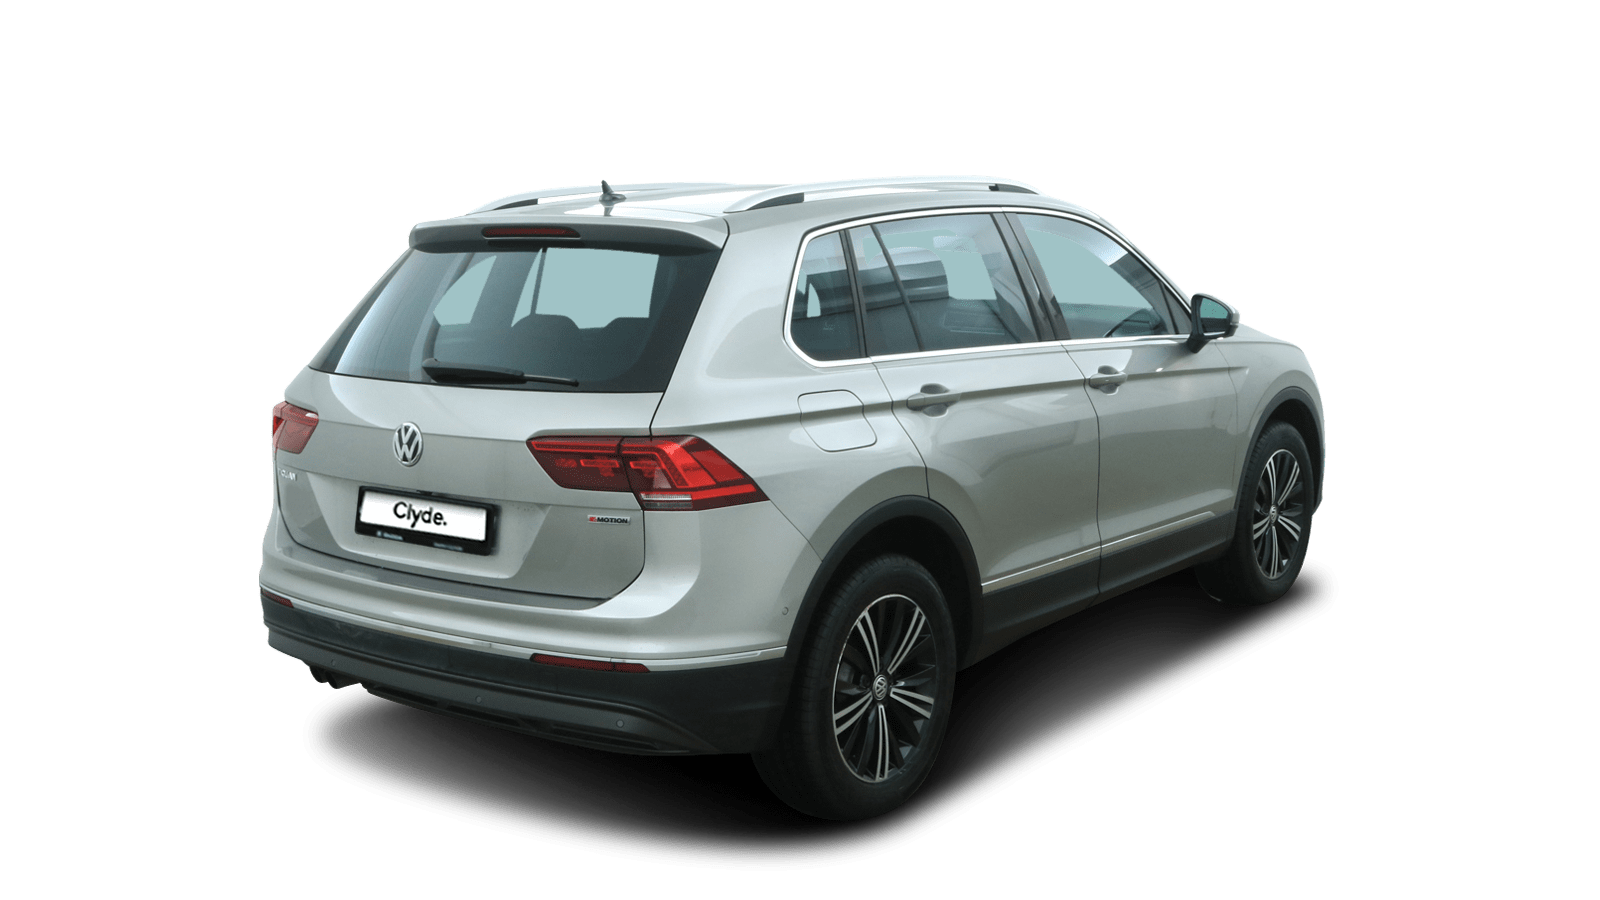 VW Tiguan Silver back - Clyde car subscription